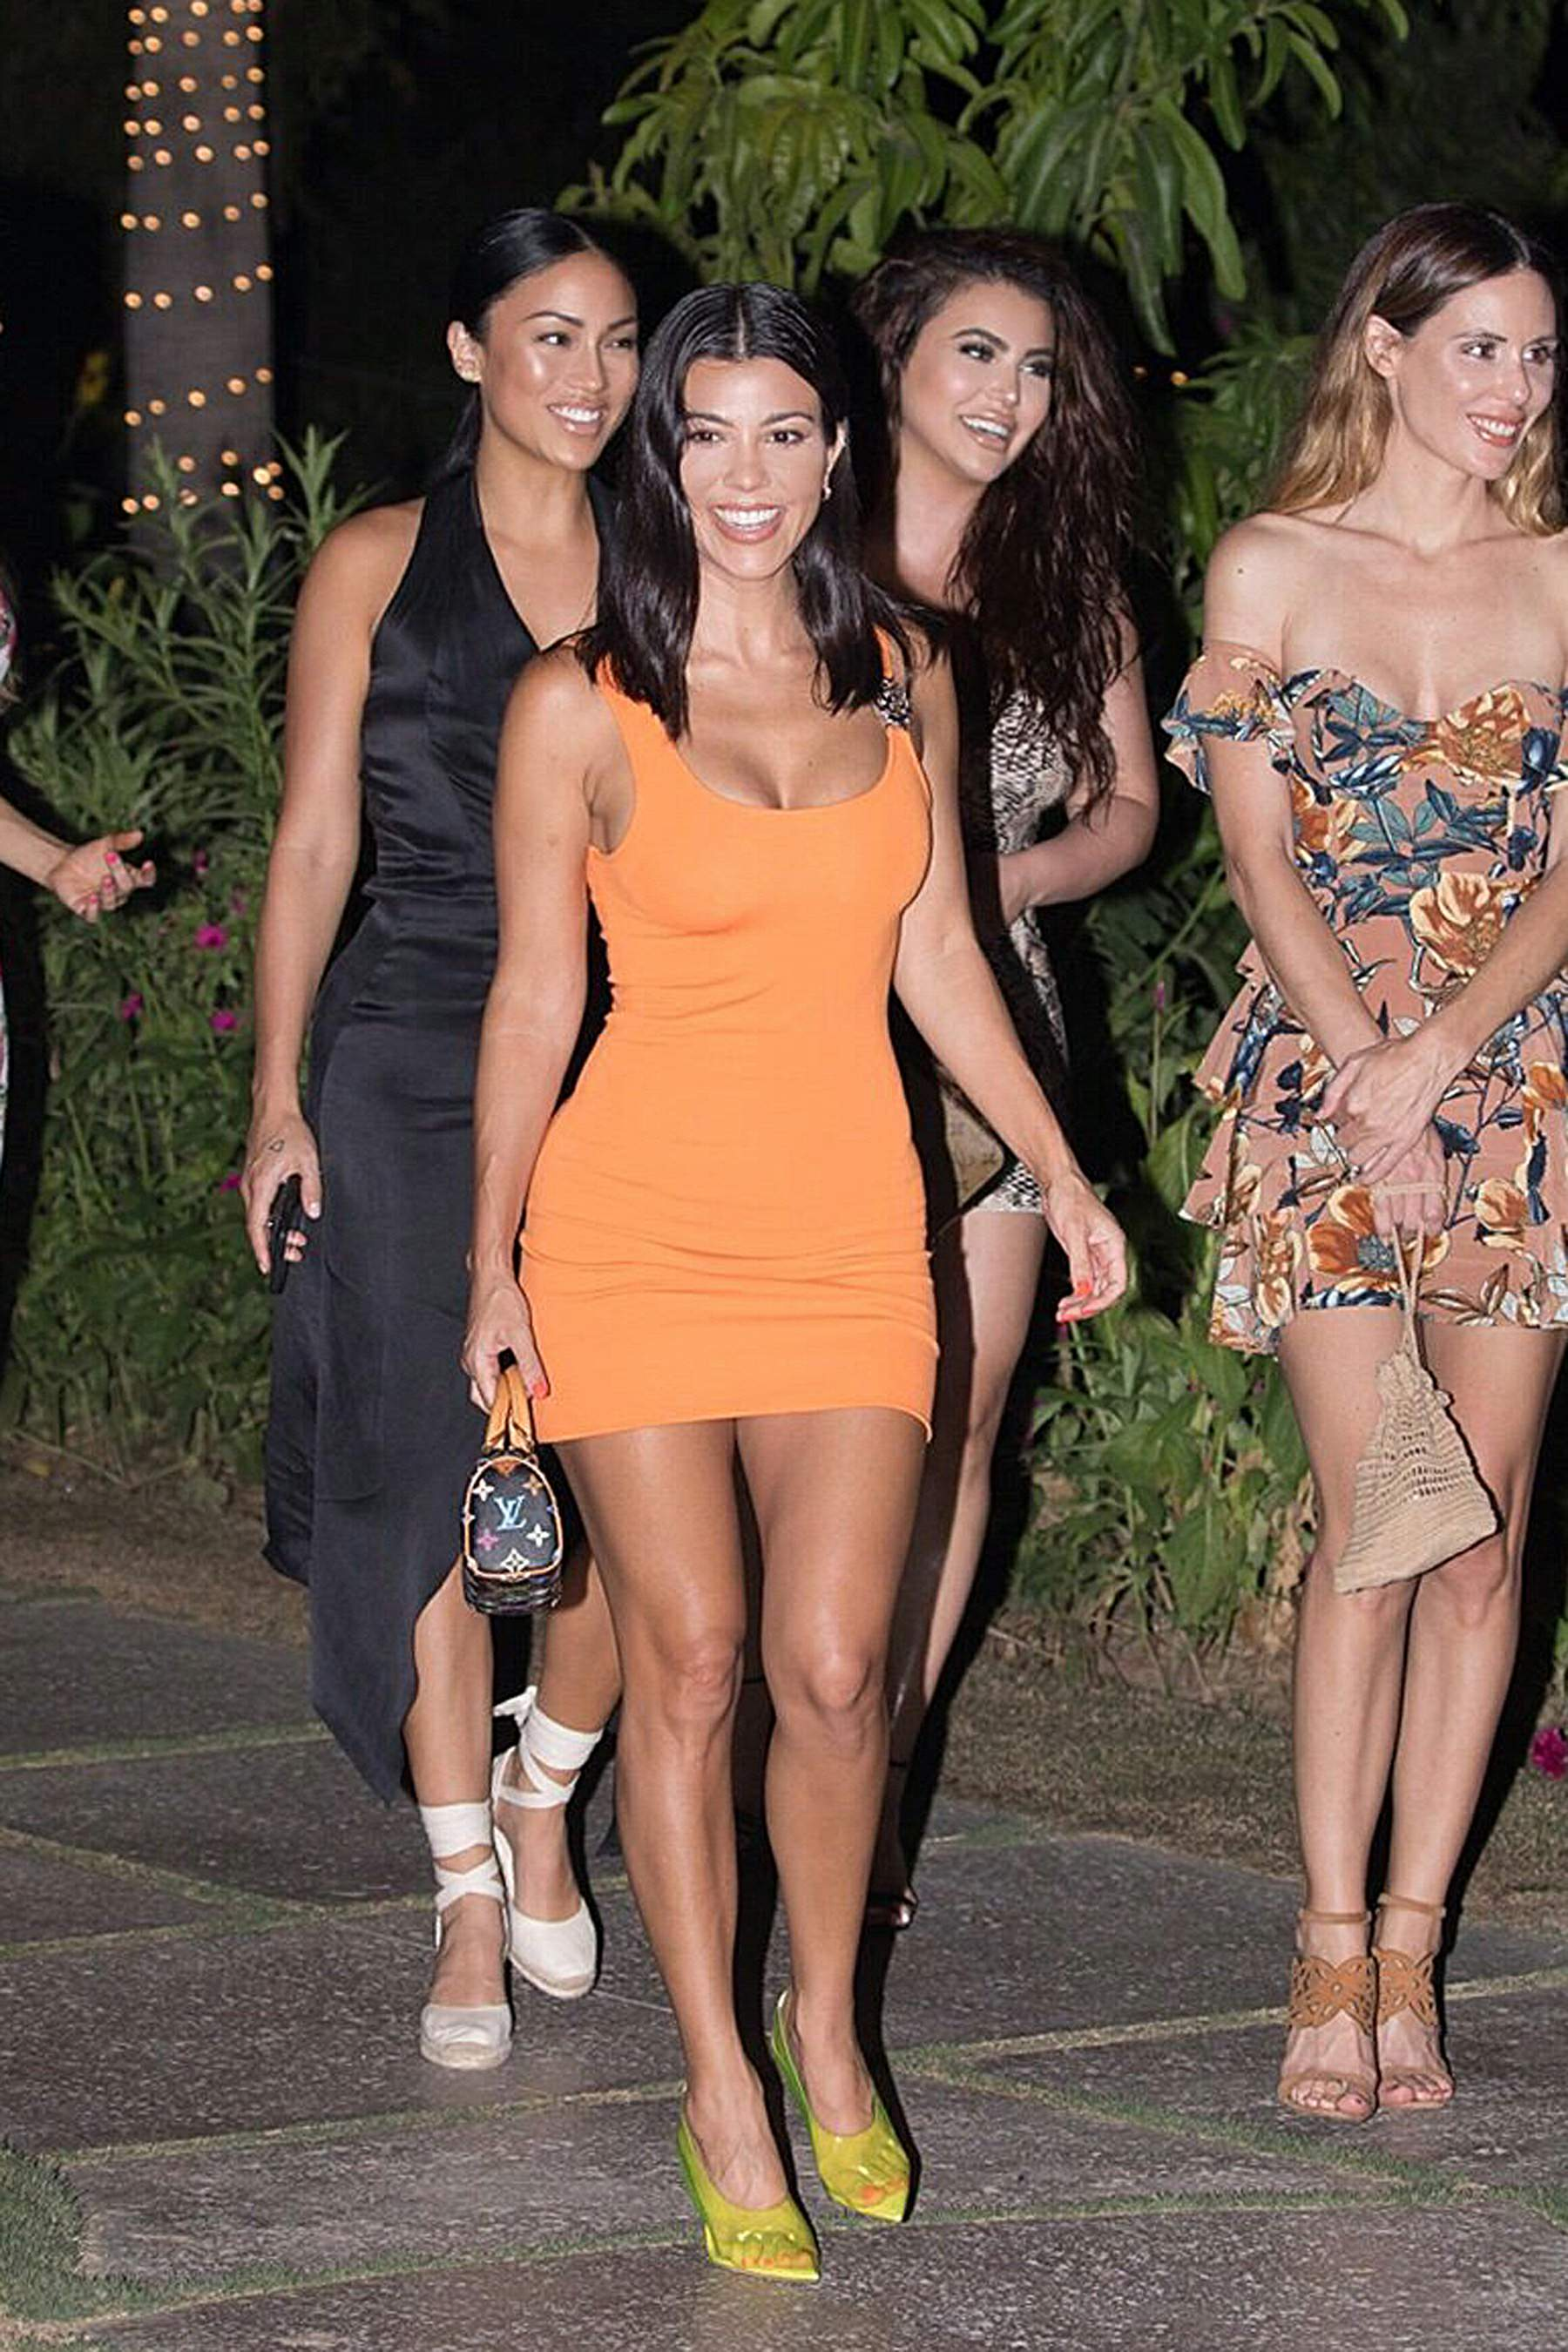 Kourtney Kardashian And her friends out for dinner at Flora Farms in Cabo, Mexico 25-08-2018